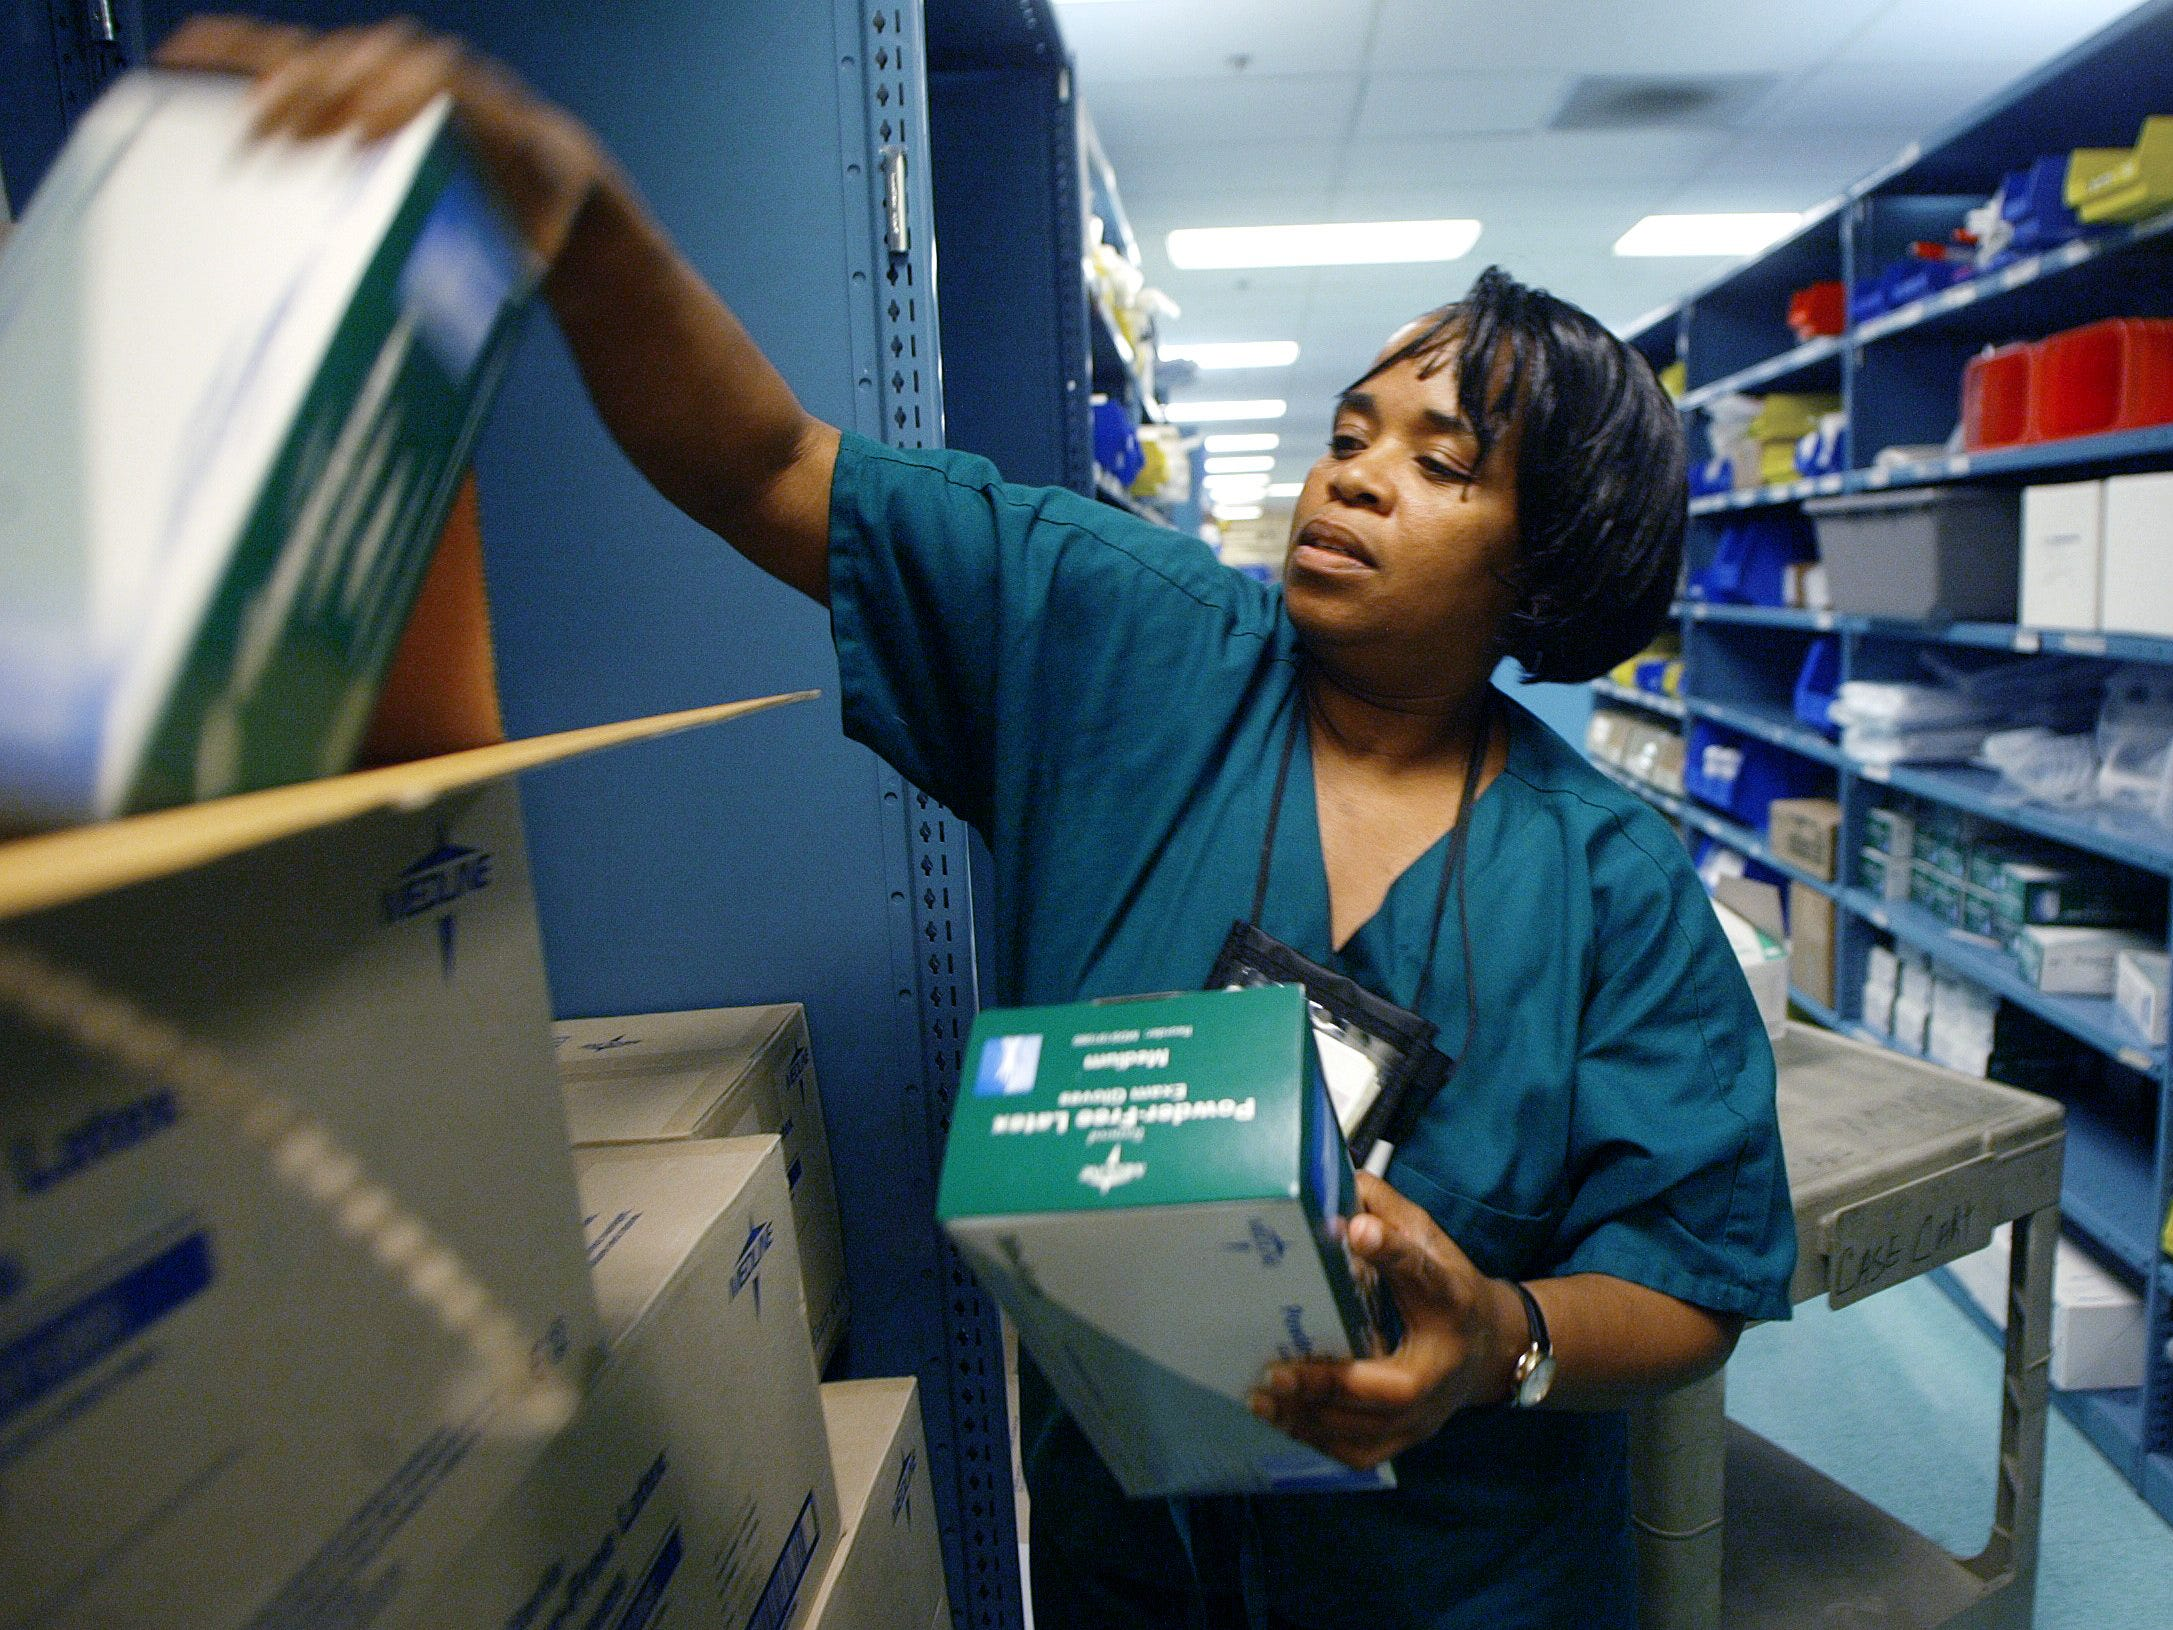 Clara Jenkins retrieves medical supplies from the stock room at Saint Thomas Hospital to be sent to treatment floors May 9, 2003. Jenkins is part of Saint Thomas' Jobs in Healthcare program, which helps employee residents of the James A. Cayce Homes.